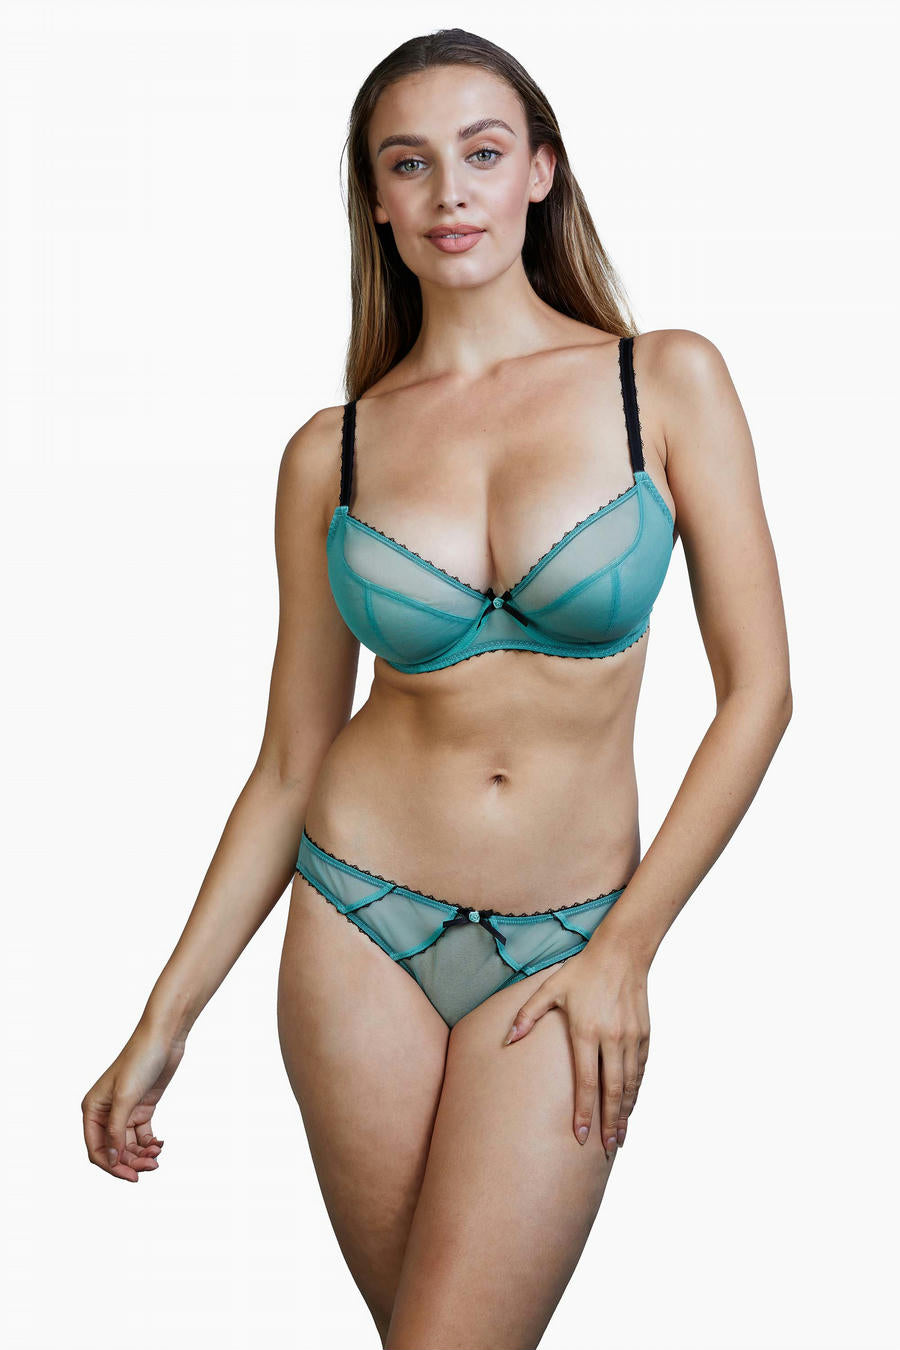 Deja Day Grace in Green Moss + Black Brief 4-16